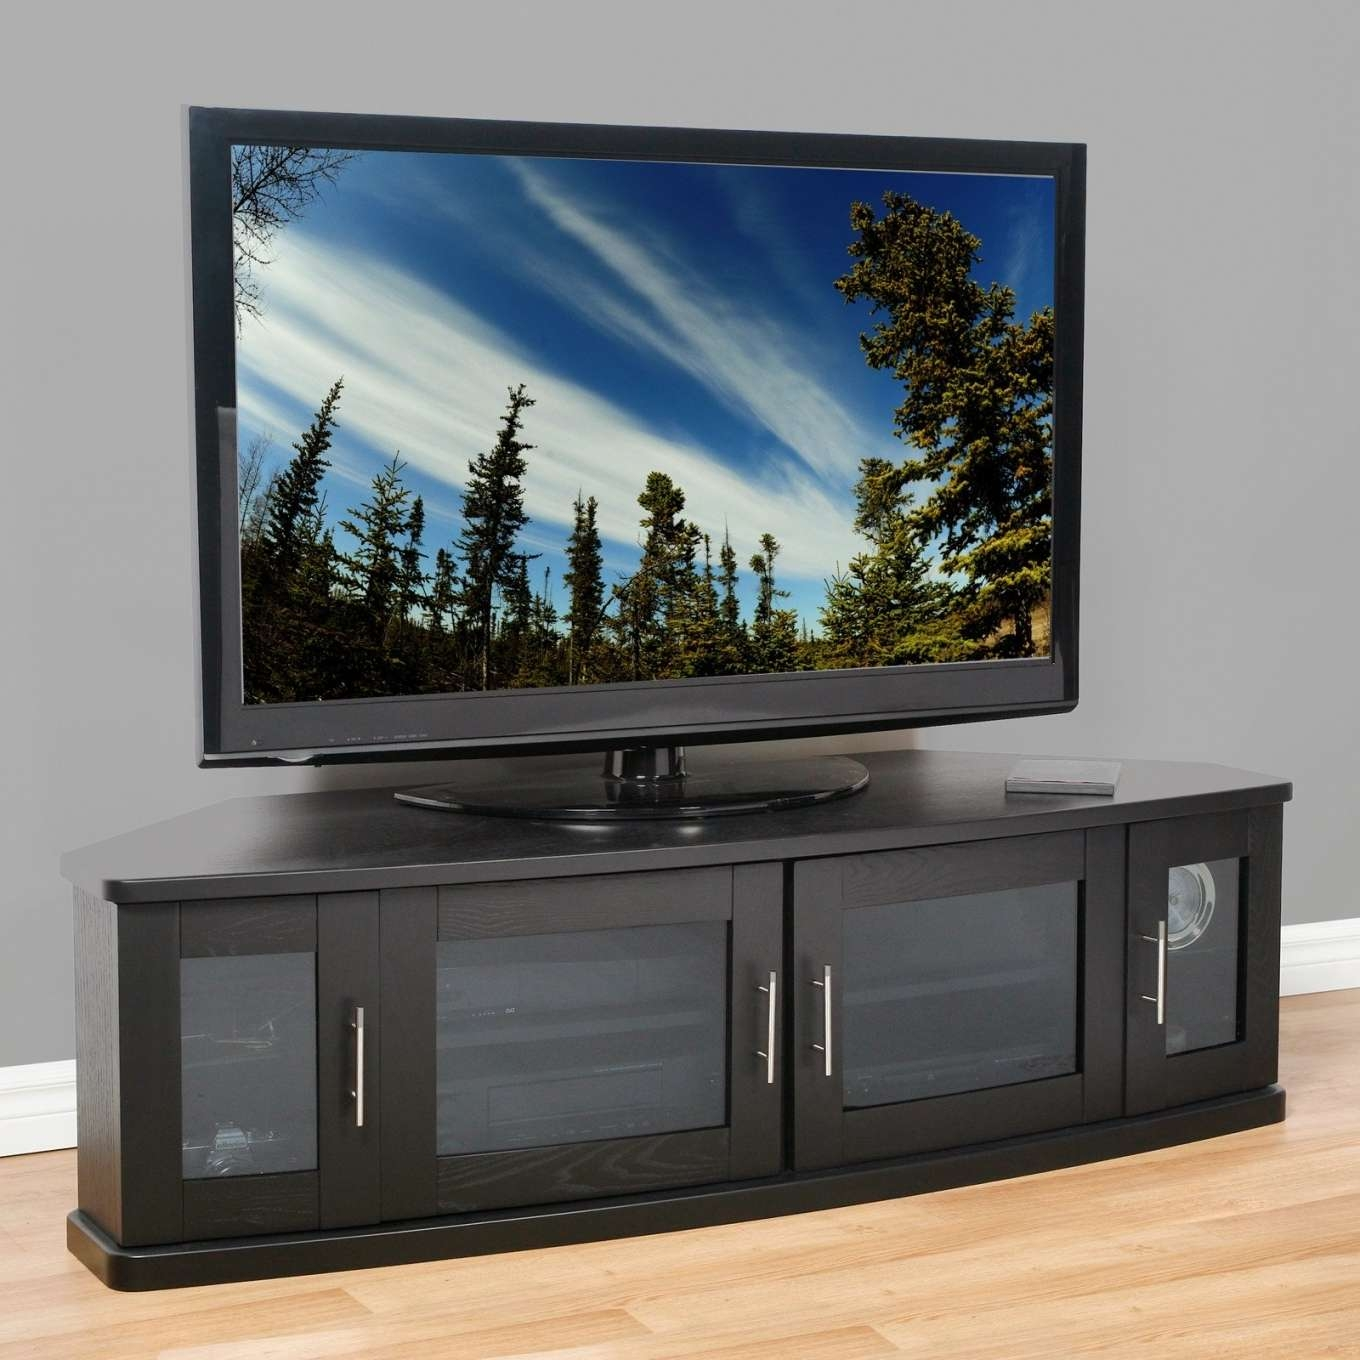 Modern Tv Stands For 60 Inch Flat Screens Inspirational Regarding Corner Tv Stands For 60 Inch Flat Screens (View 8 of 15)